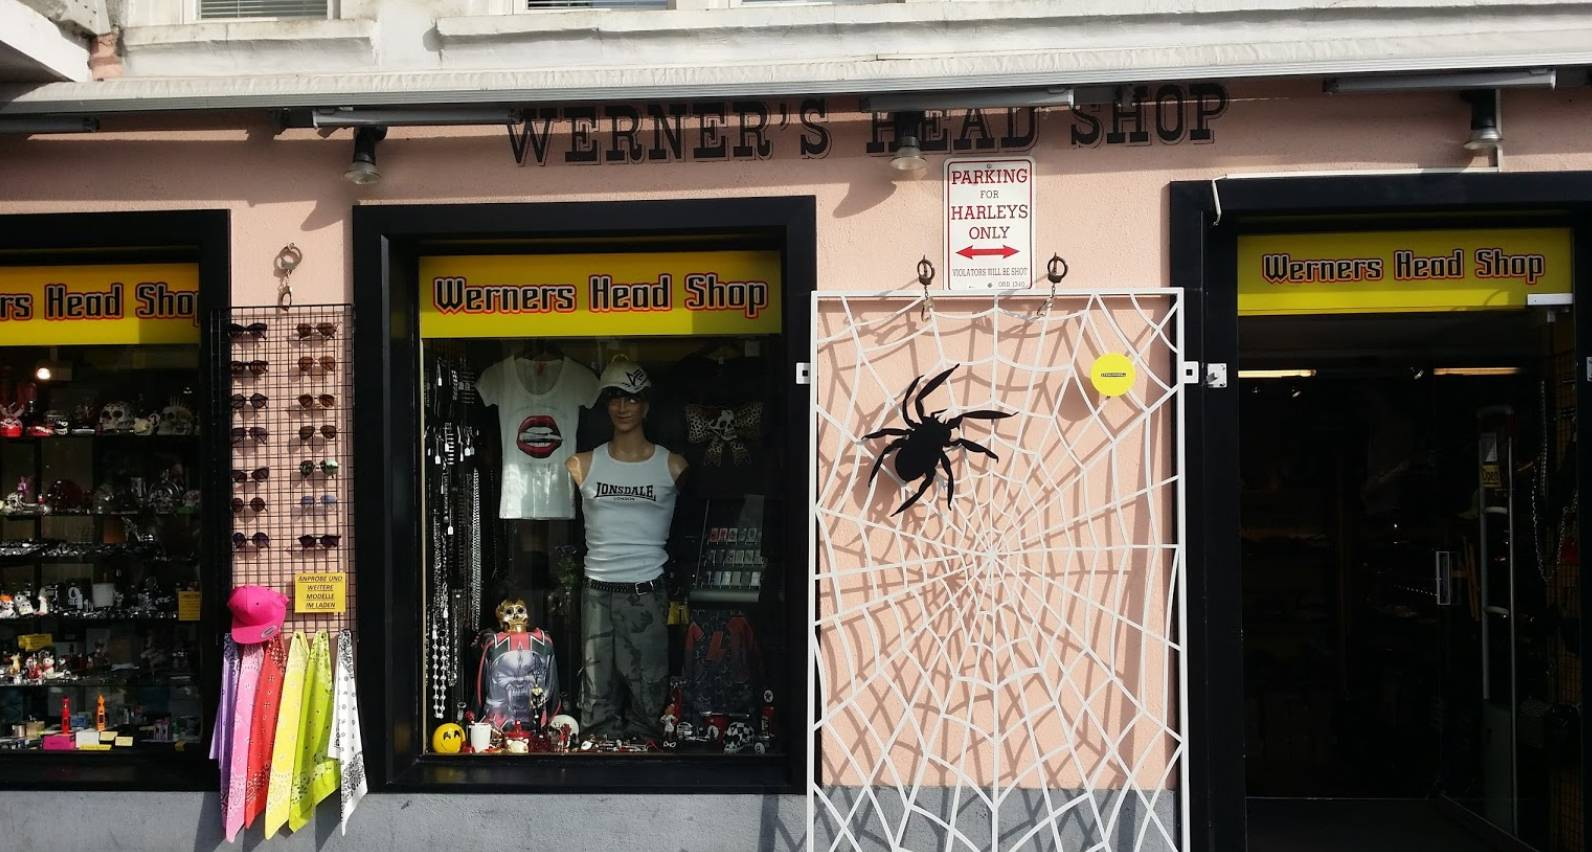 Werners Head Shop